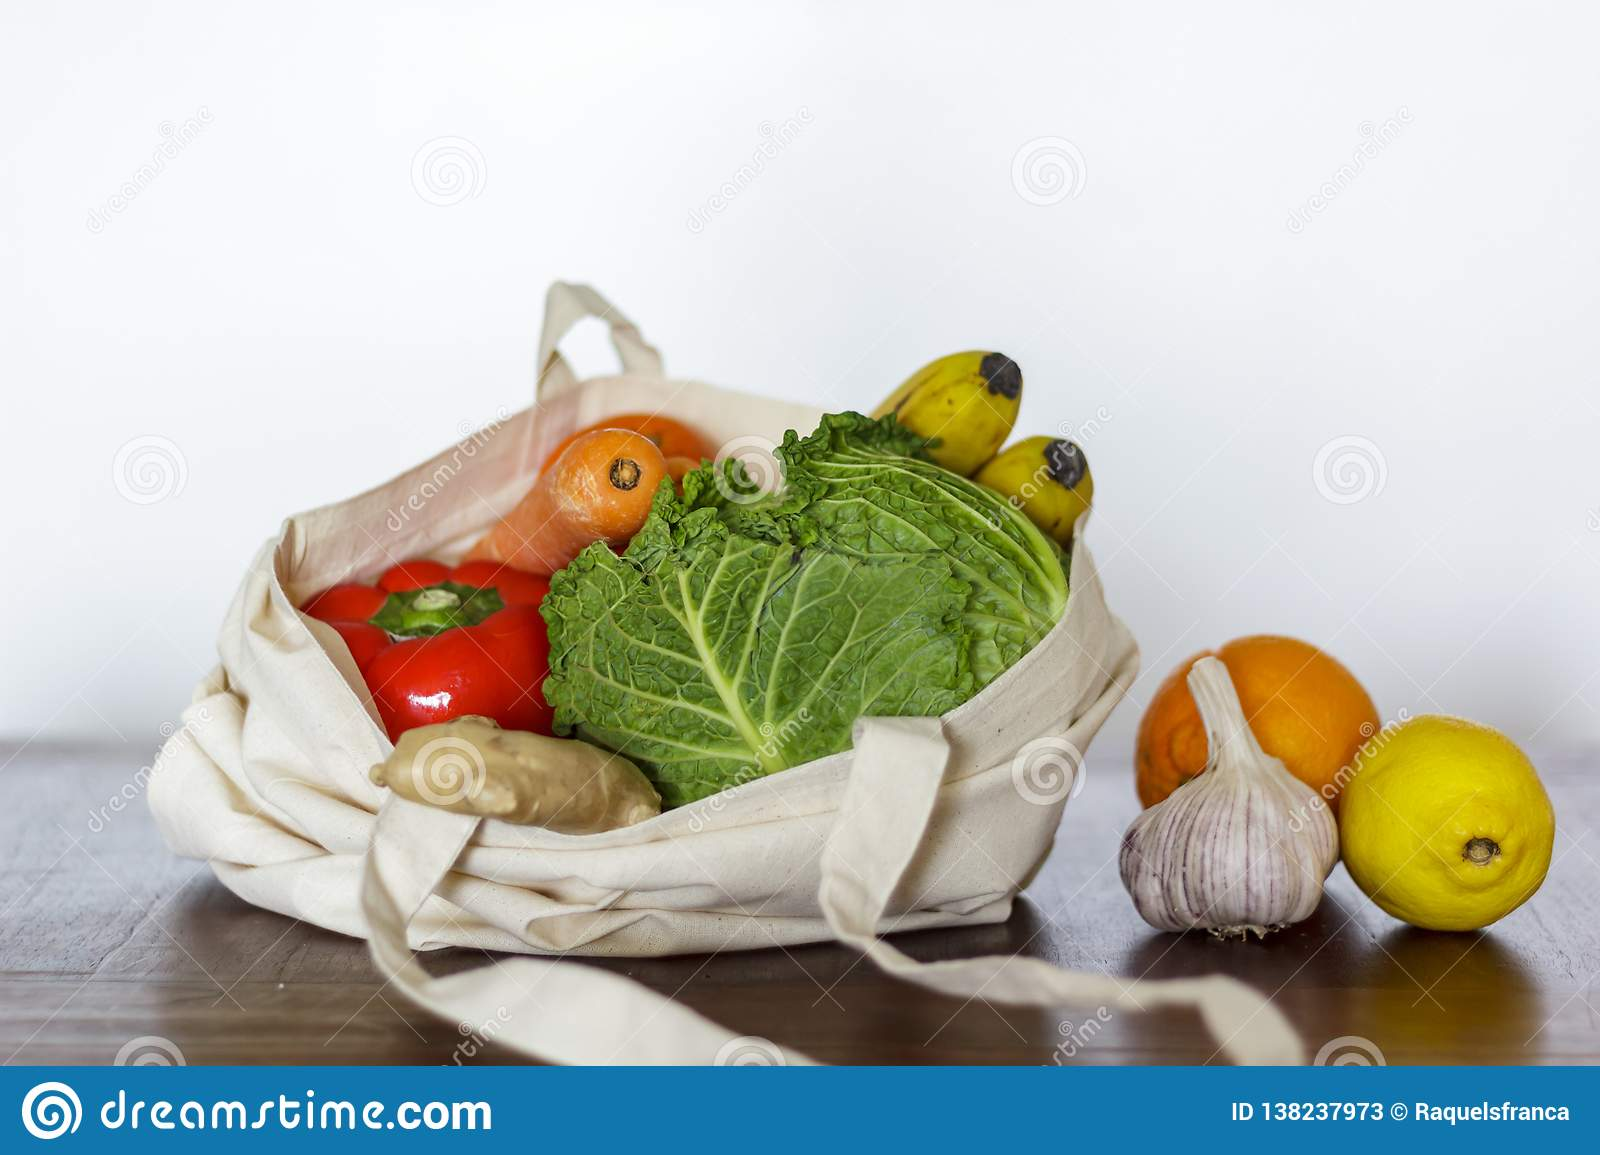 Fresh vegetables and fruits in cotton bag. Zero Waste, Plastic free concept